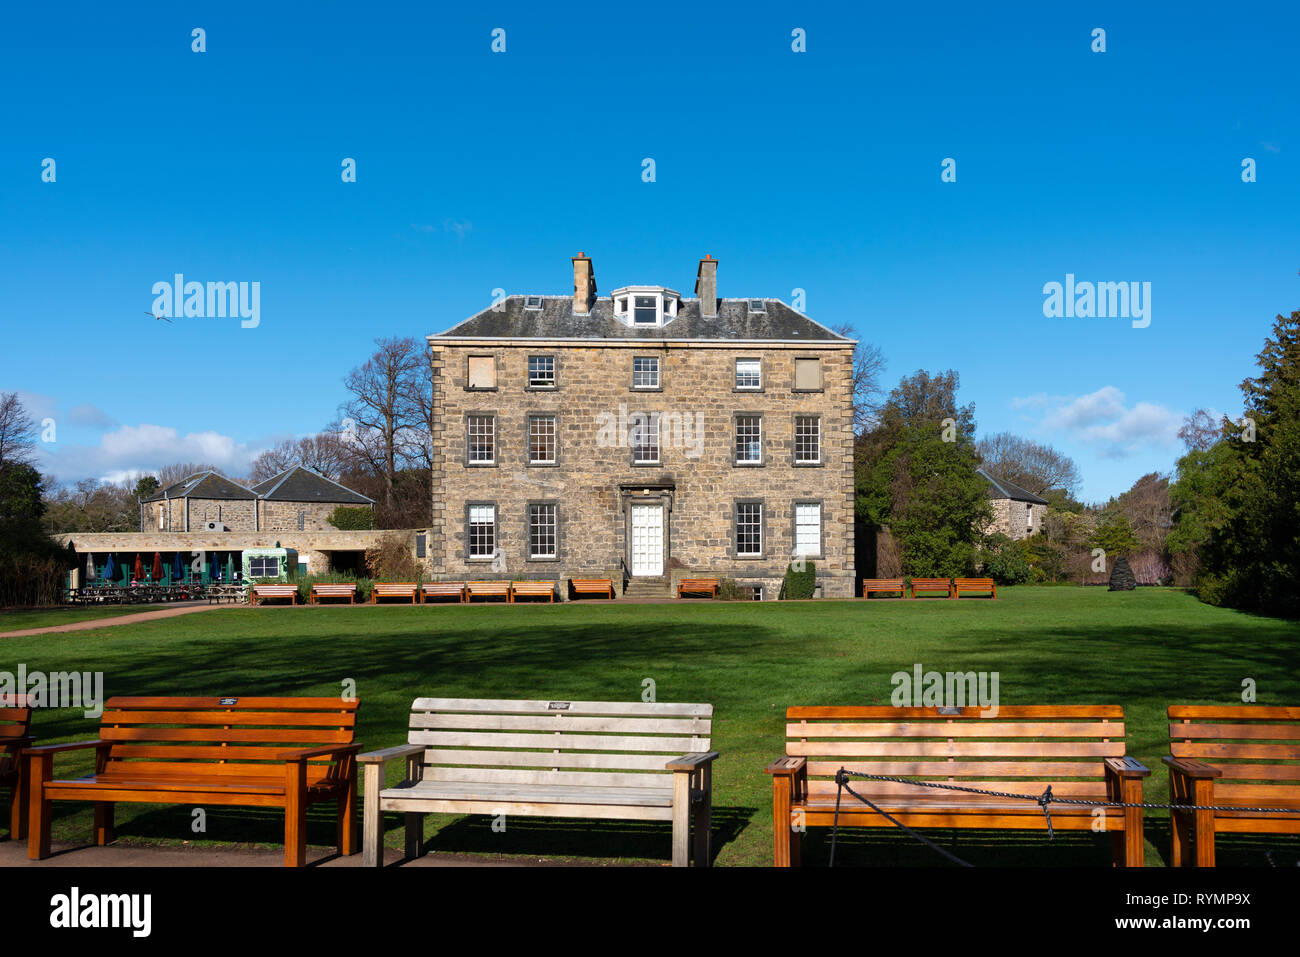 Exterior view of Inverleith House in Royal Botanic Garden Edinburgh, Scotland UK - Stock Image